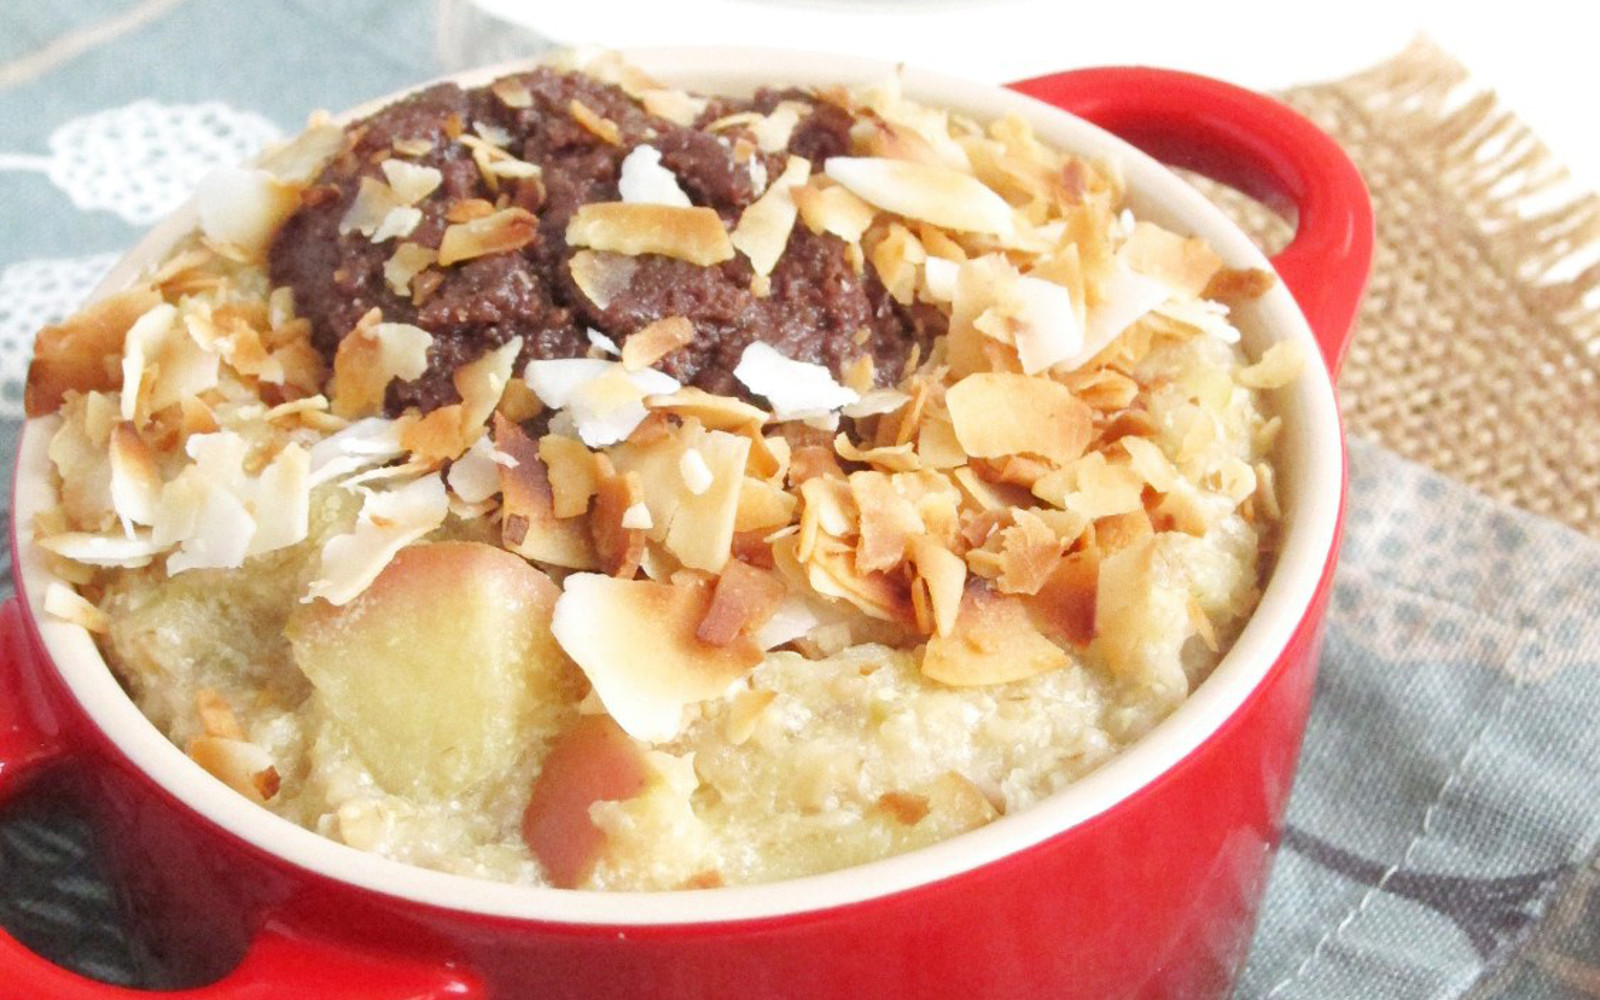 Apple-Oatmeal-with-Chocolate-Tahini-and-Coconut-oatmealartist-vegan